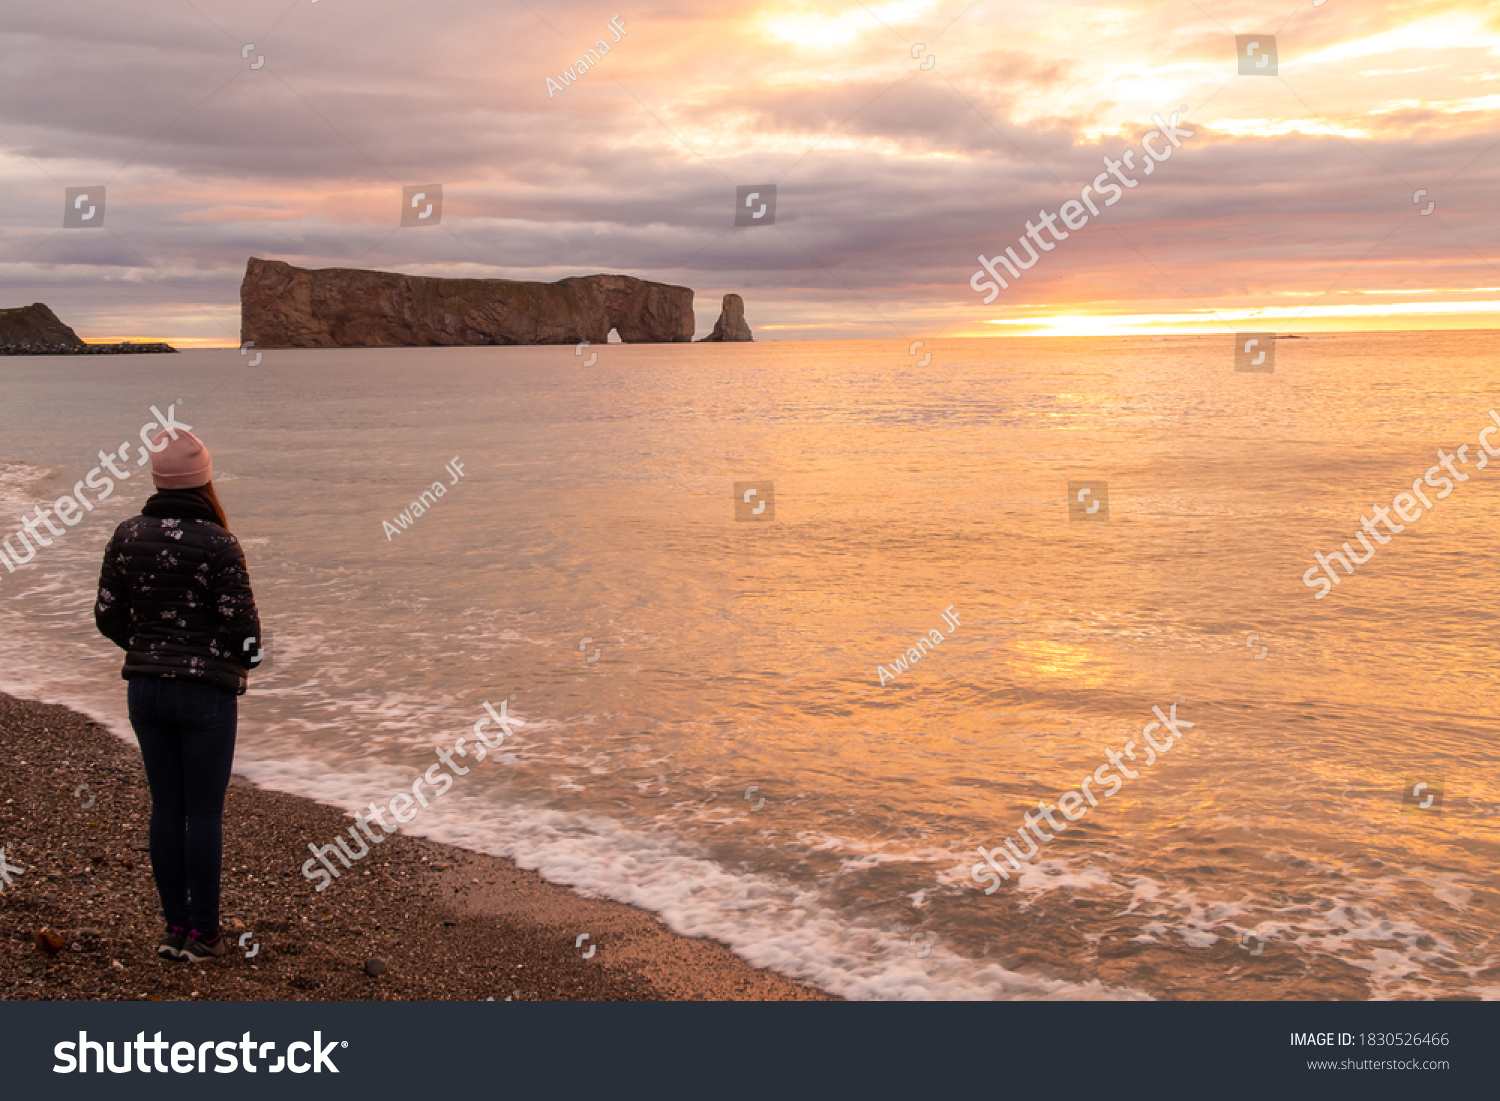 stock-photo-peaceful-view-of-a-woman-adm